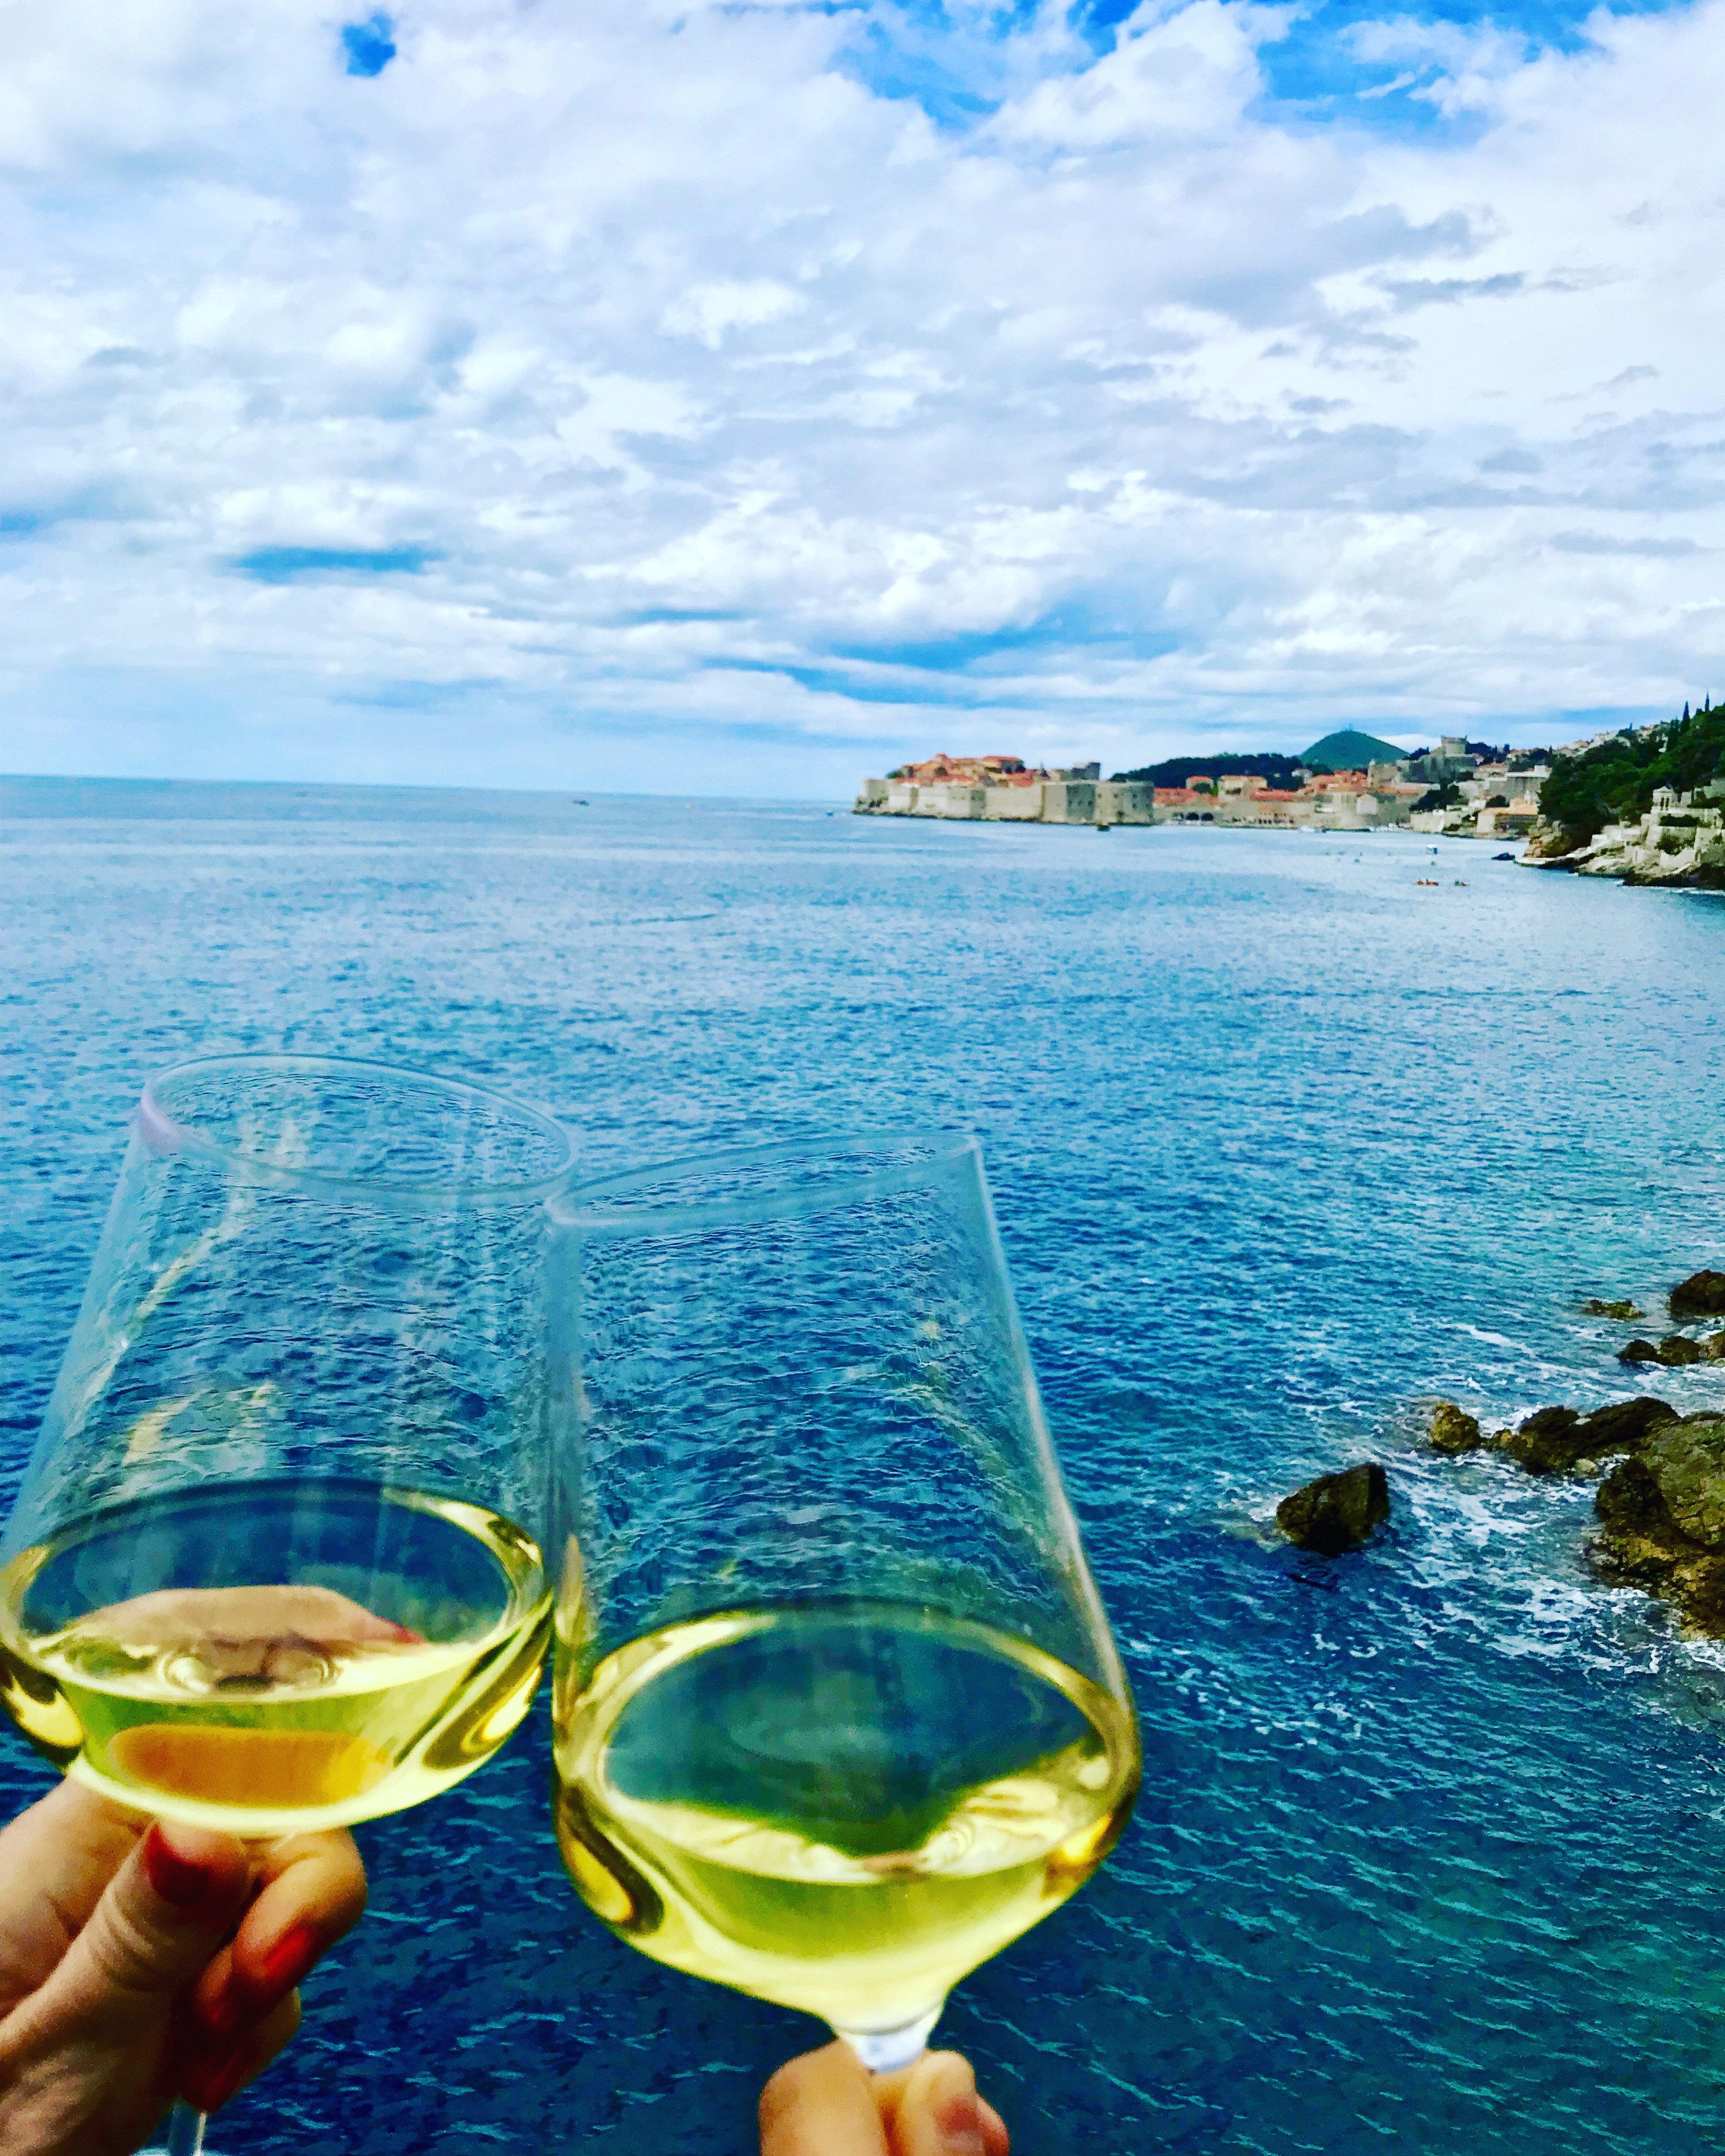 Tracy Dunn and Morgan Dunn enjoying their view from Villa Dubrovnik, and glass of wine, and a delicious lunch on the outside terrace.